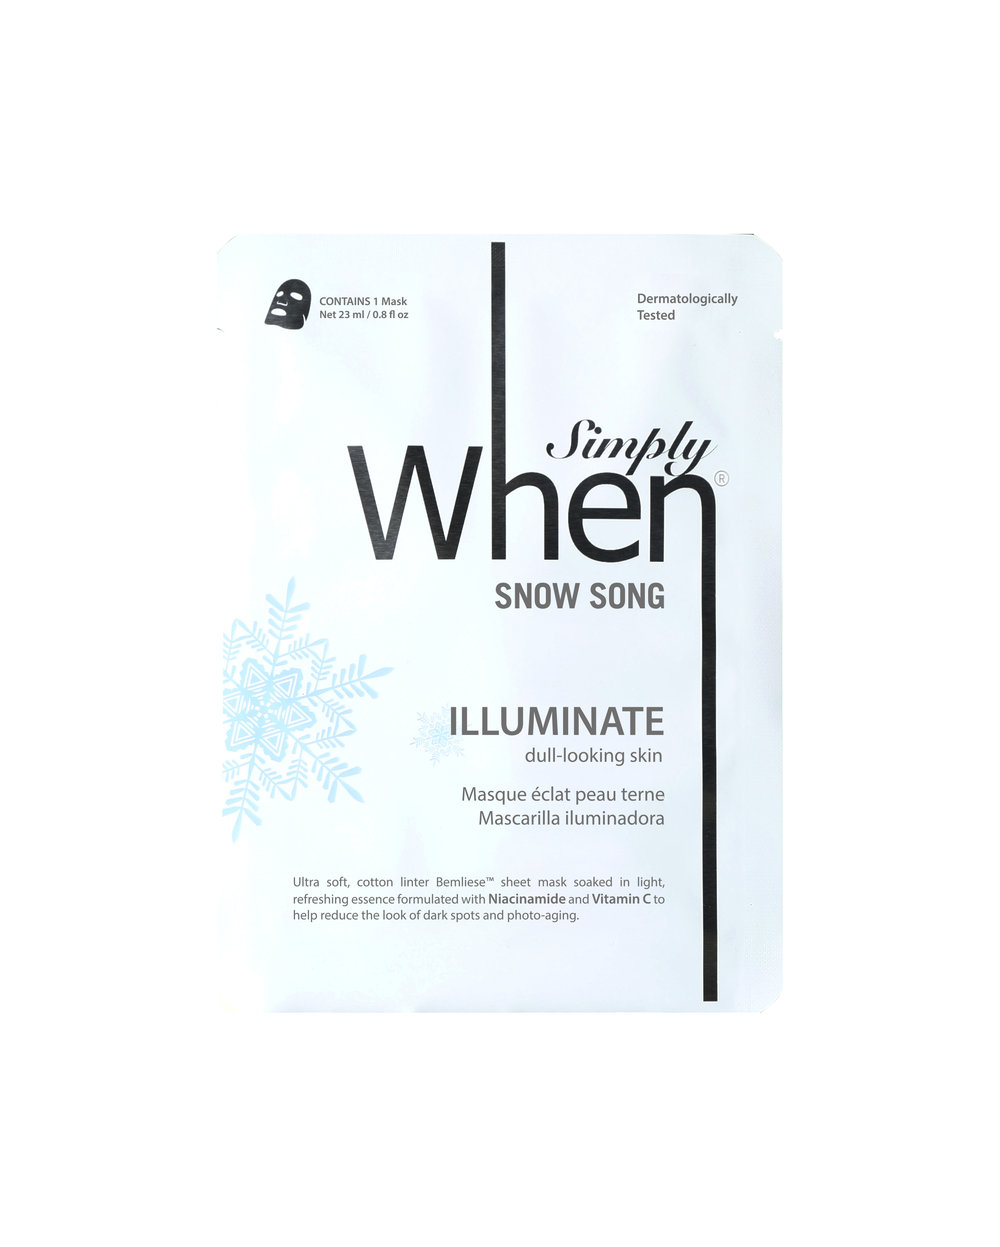 Snow Song sheet mask